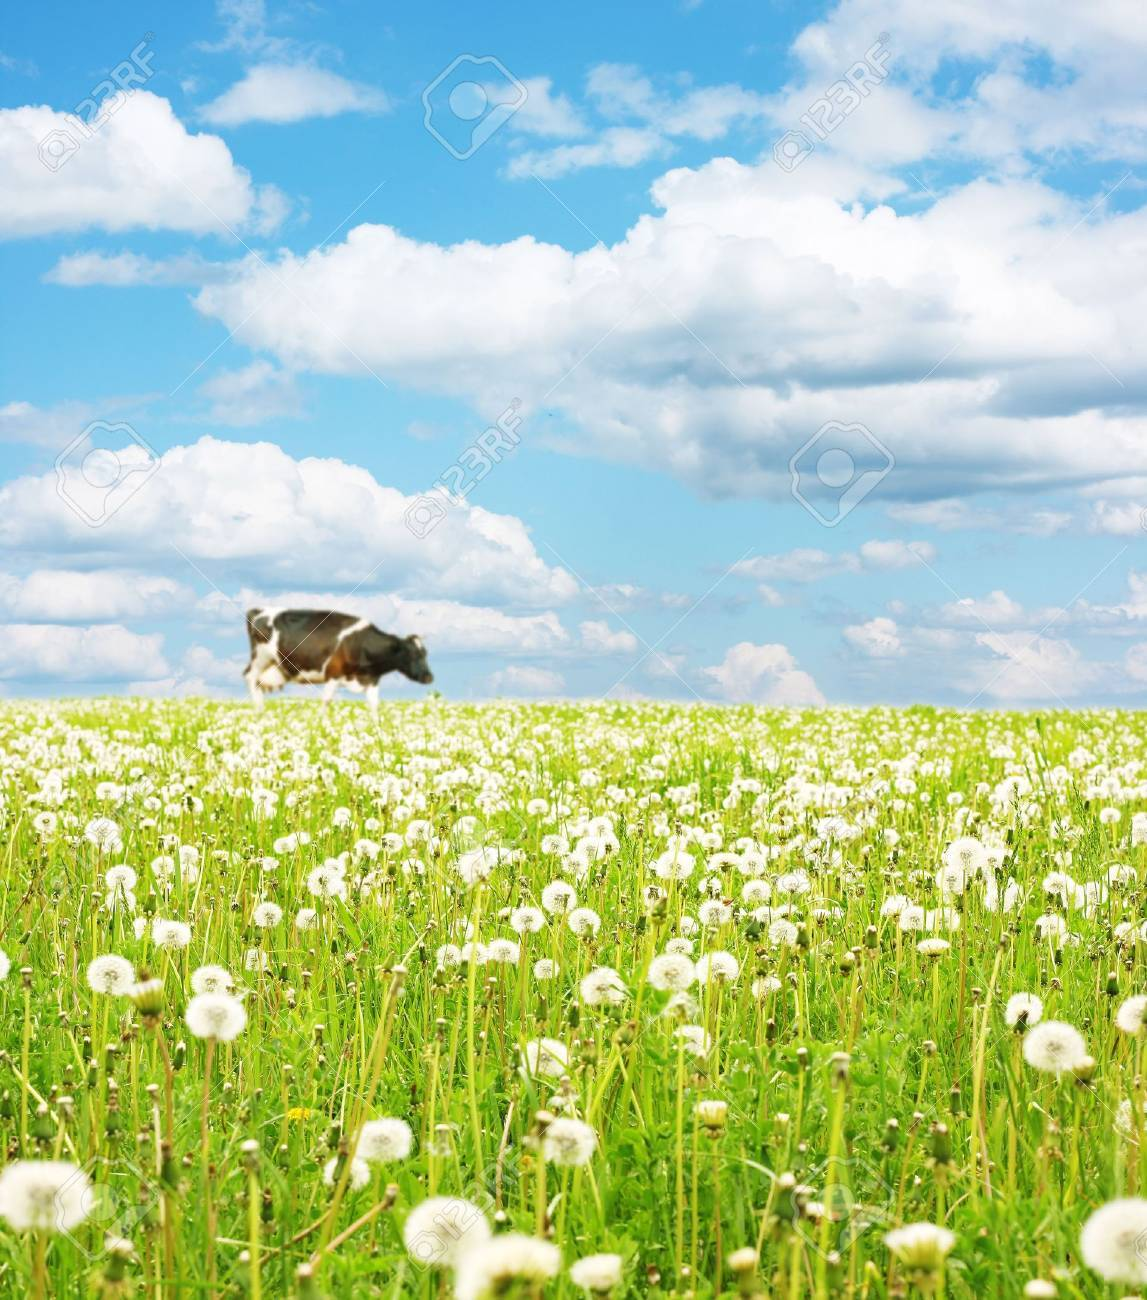 Cow walking on green meadow with green grass Stock Photo - 5573490